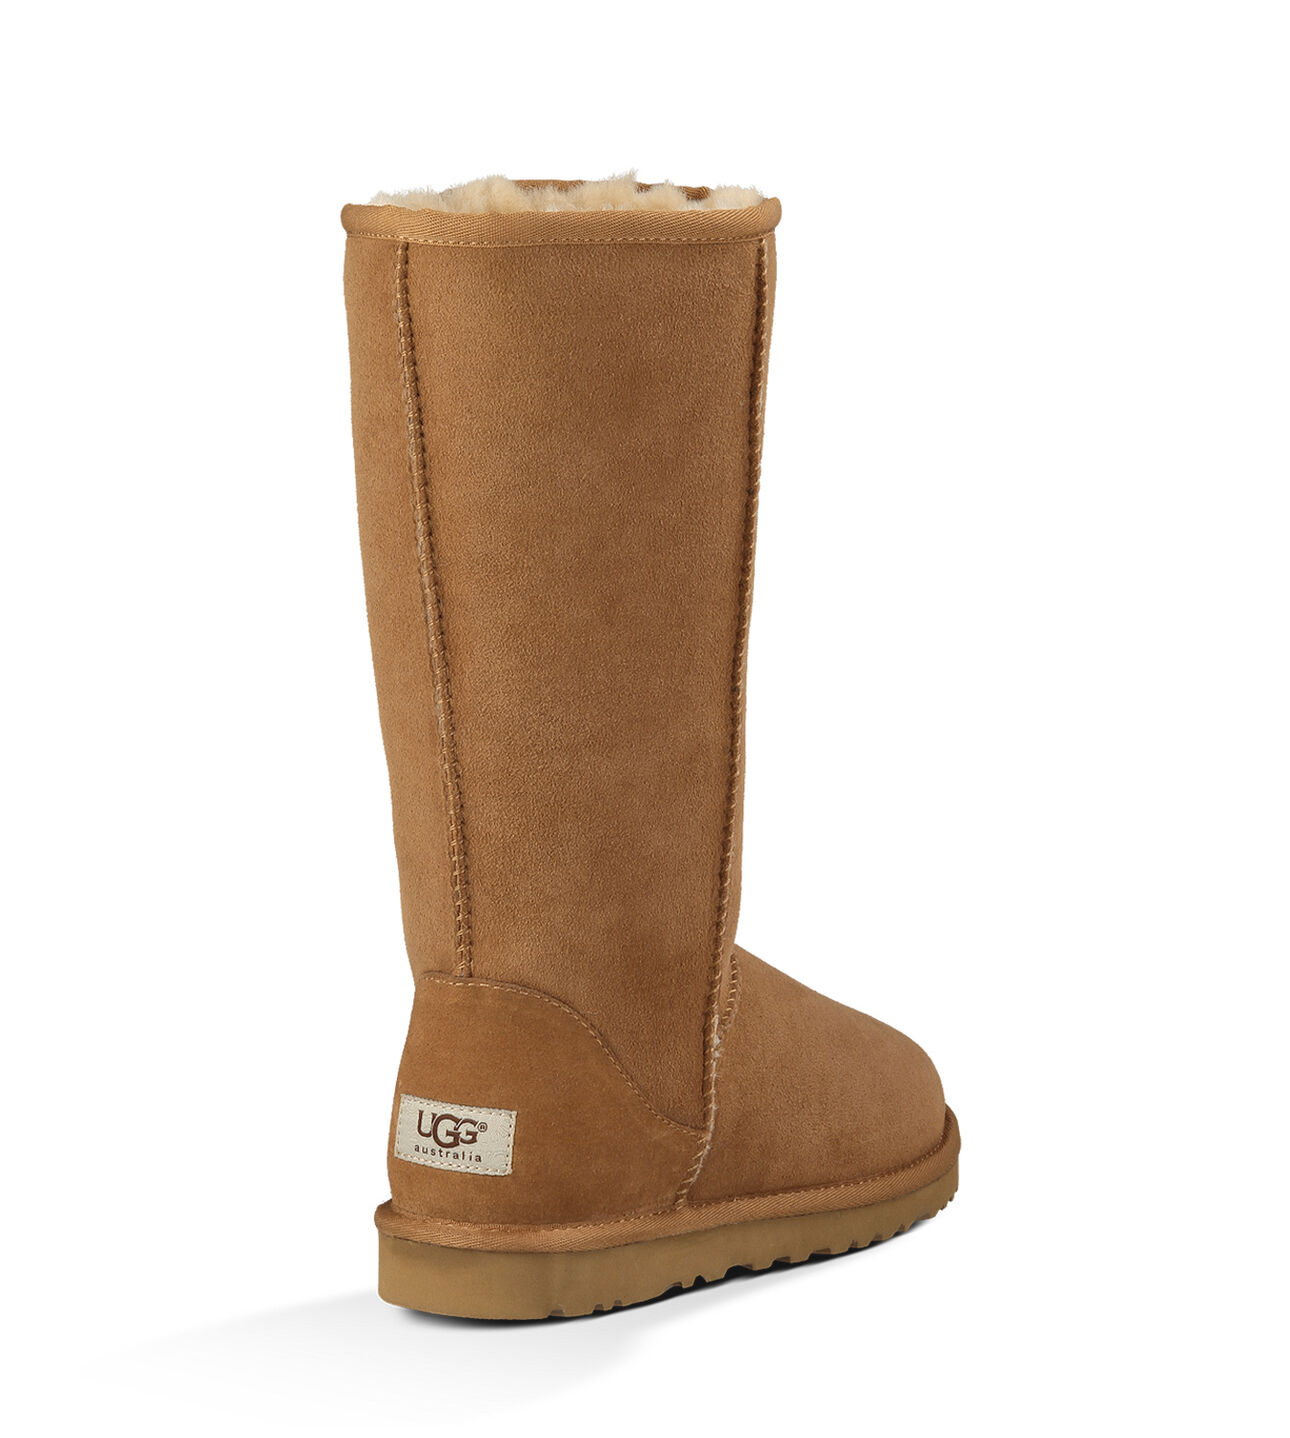 Discount Ugg Boots For Women